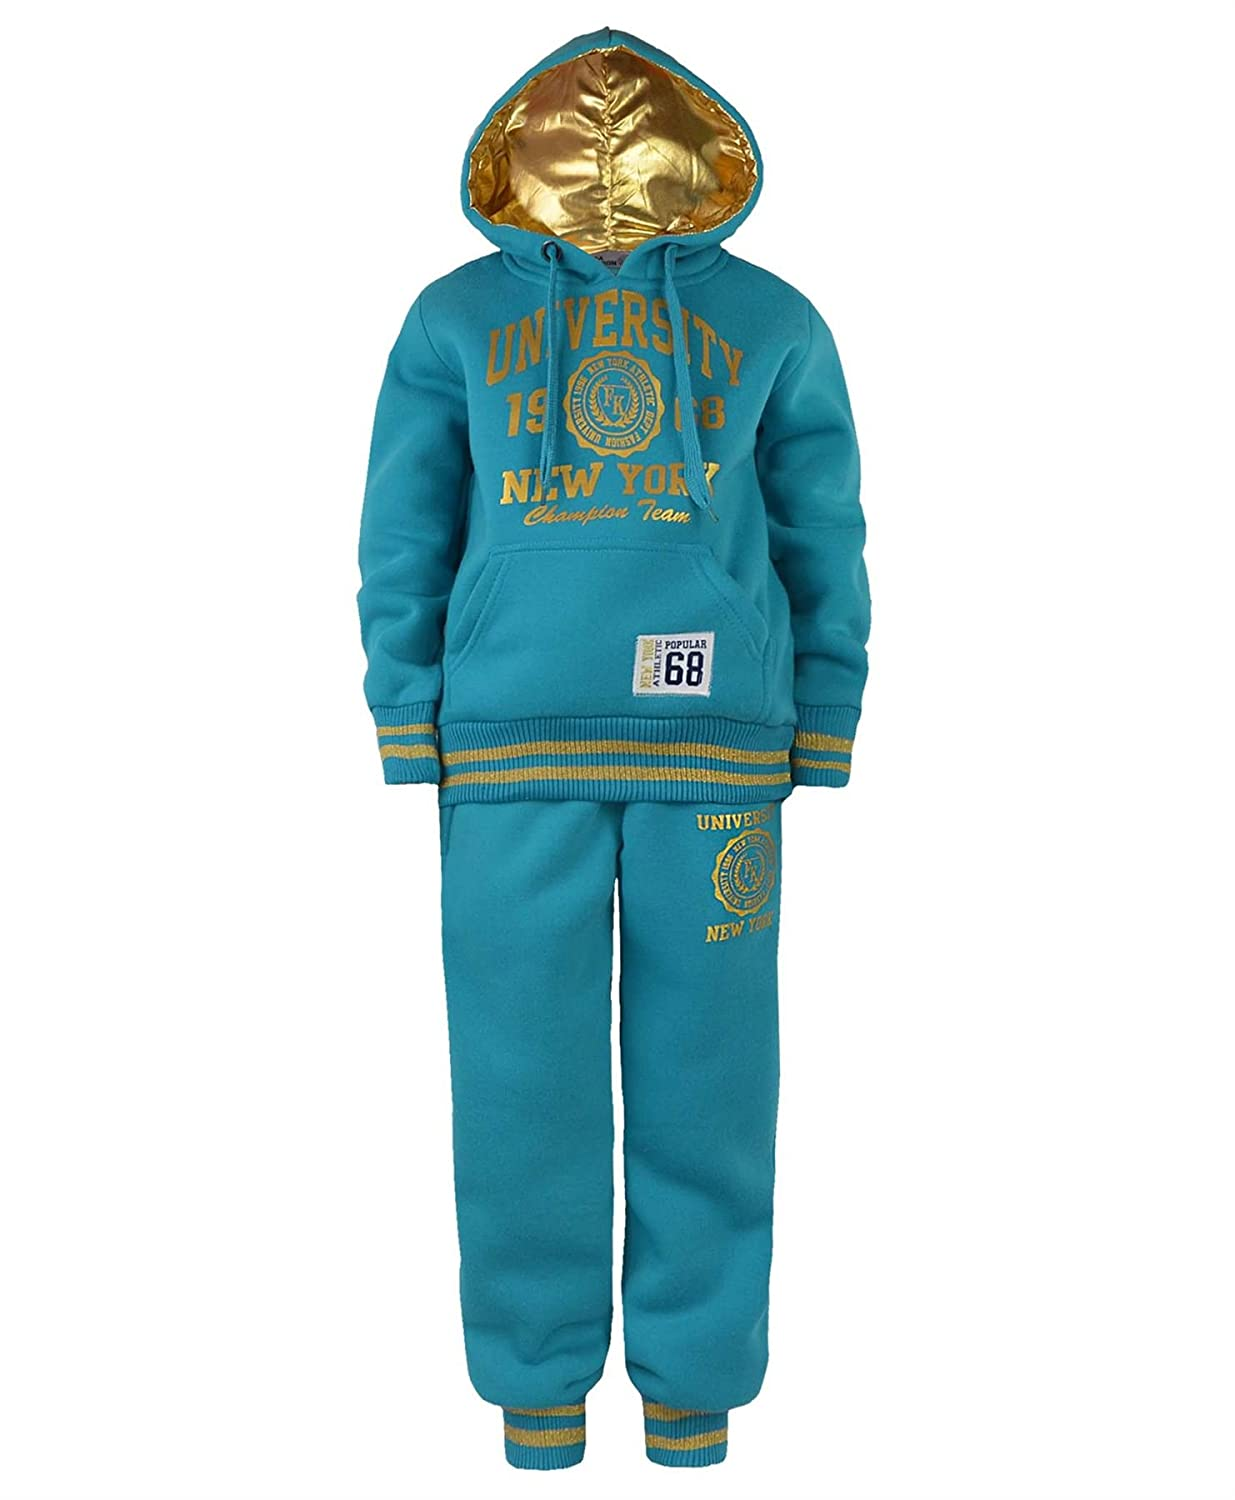 3193096328f77 Kids University Tracksuit Hooded Top Jogging Bottoms Girl Boys 2 Piece Suit